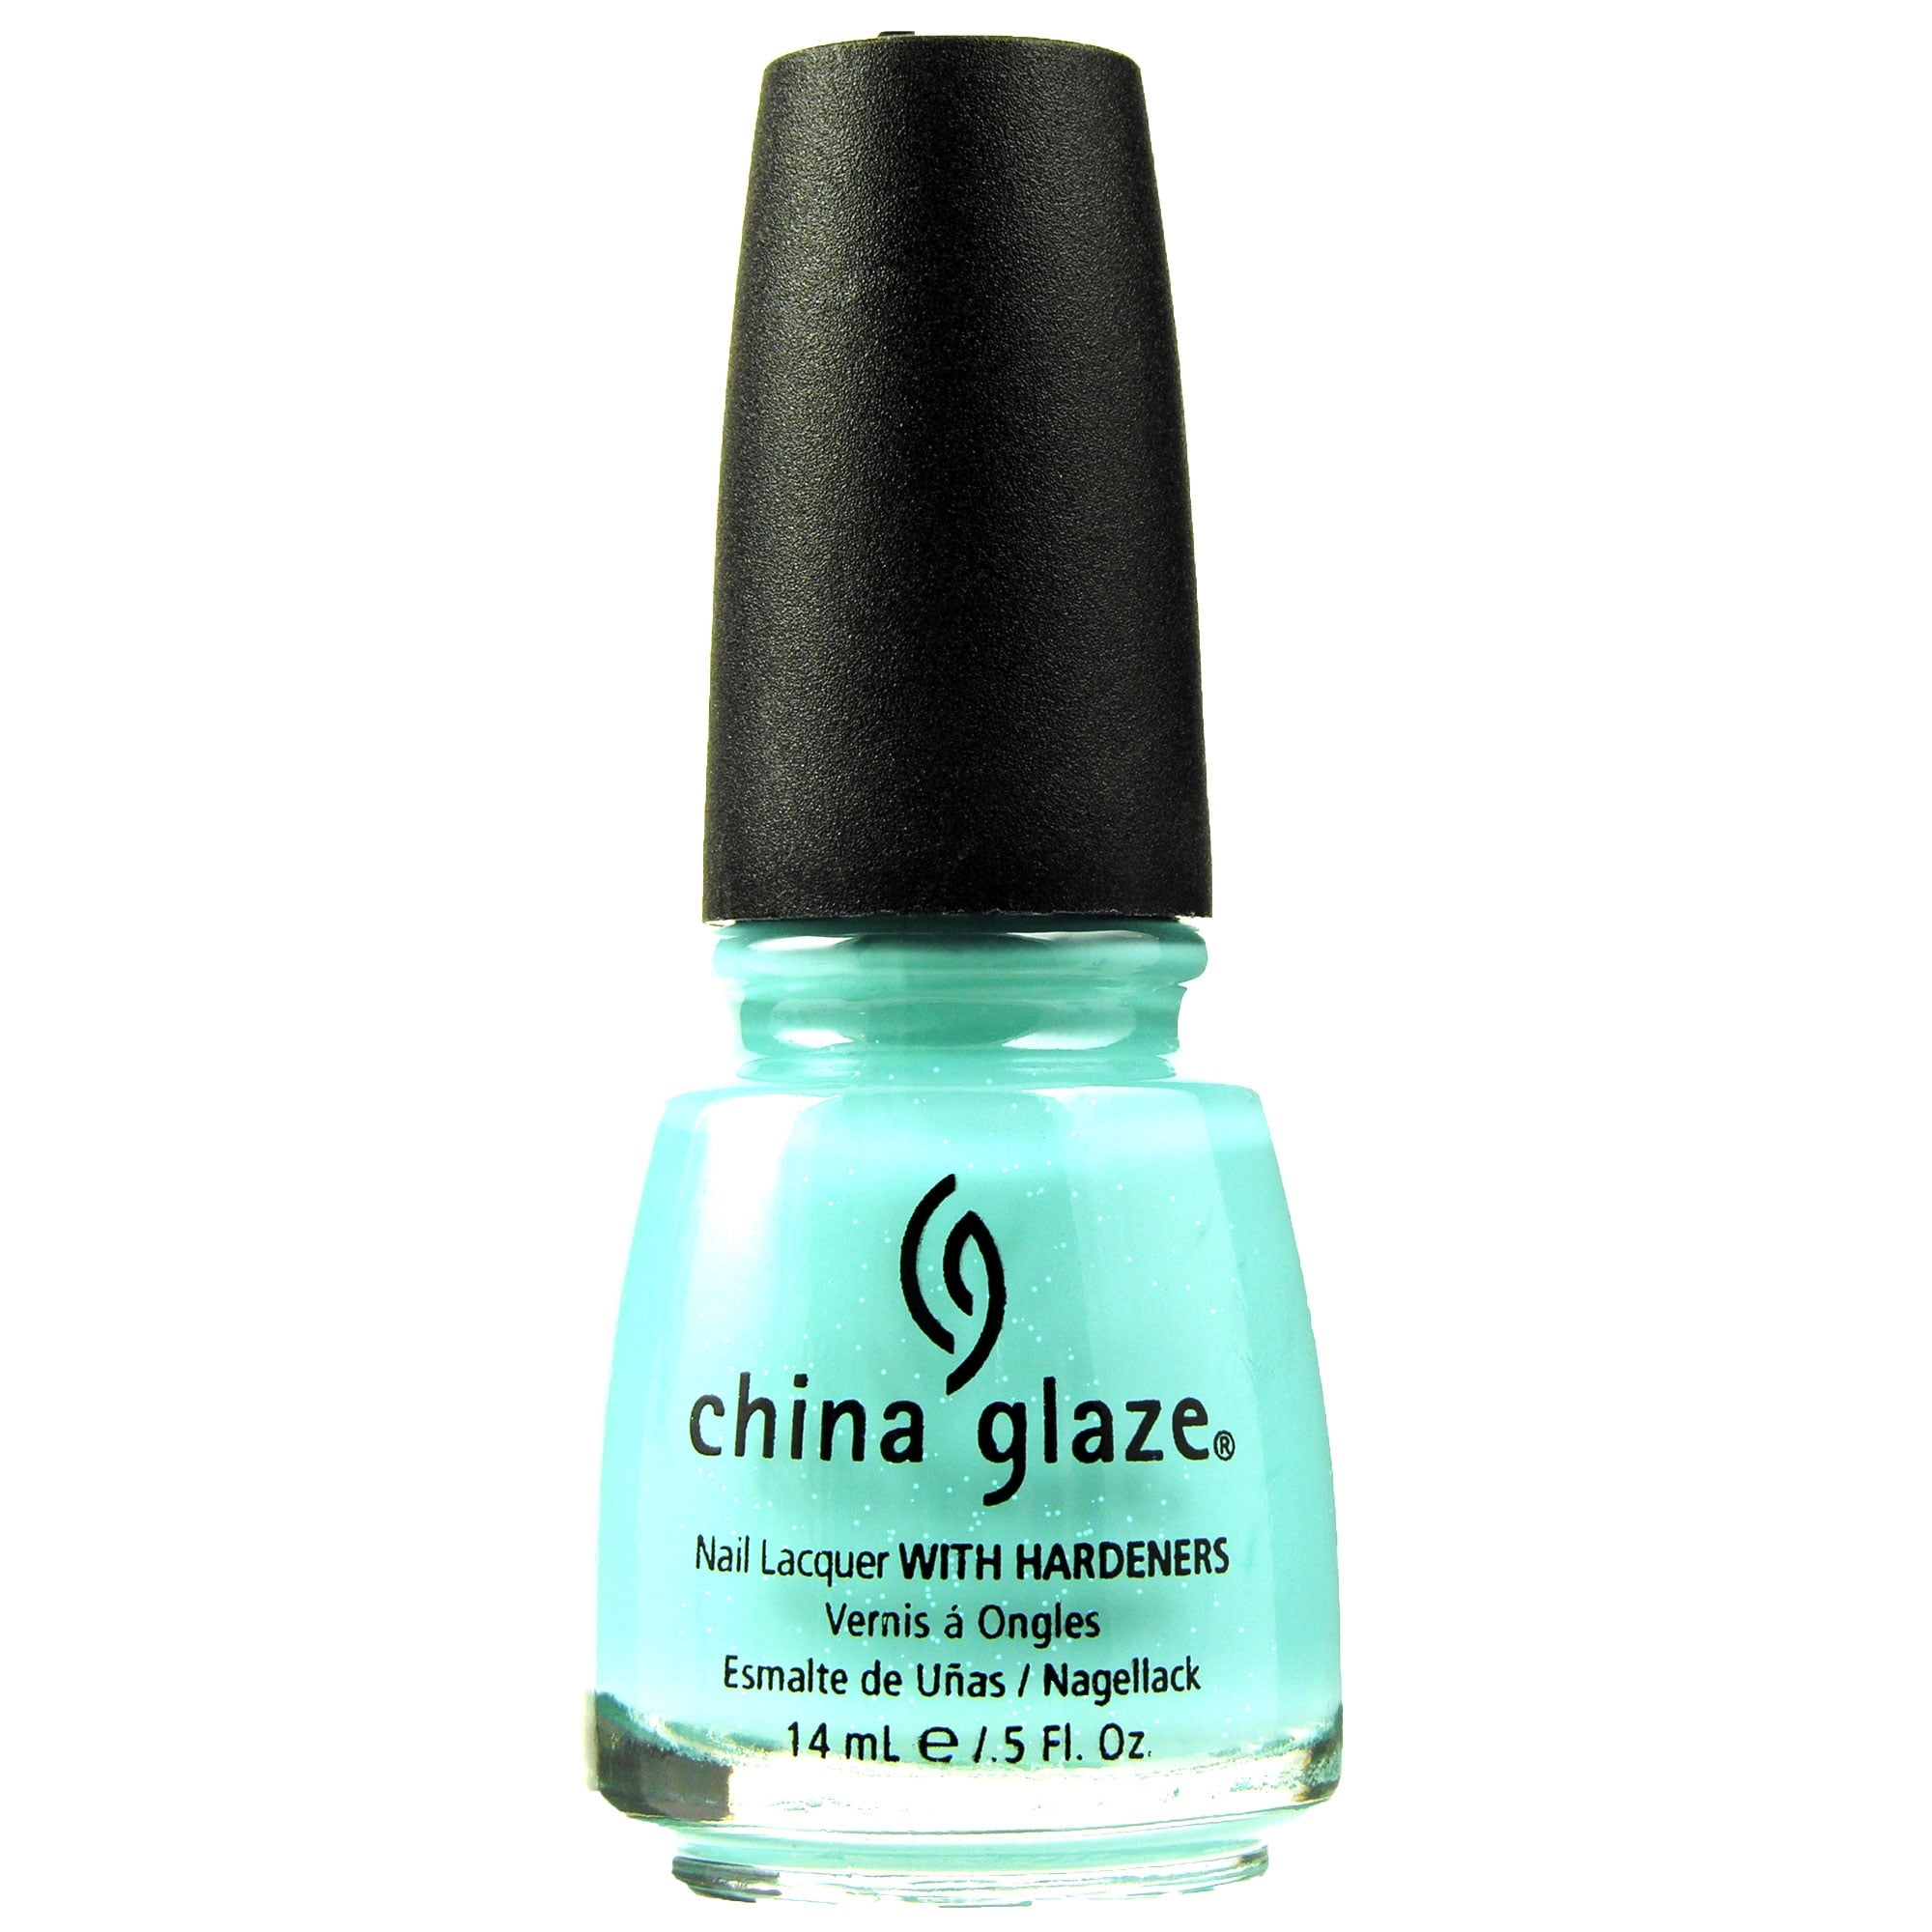 China glaze nail polish for audrey 14ml nail polish for audrey 14ml 77053 nvjuhfo Gallery